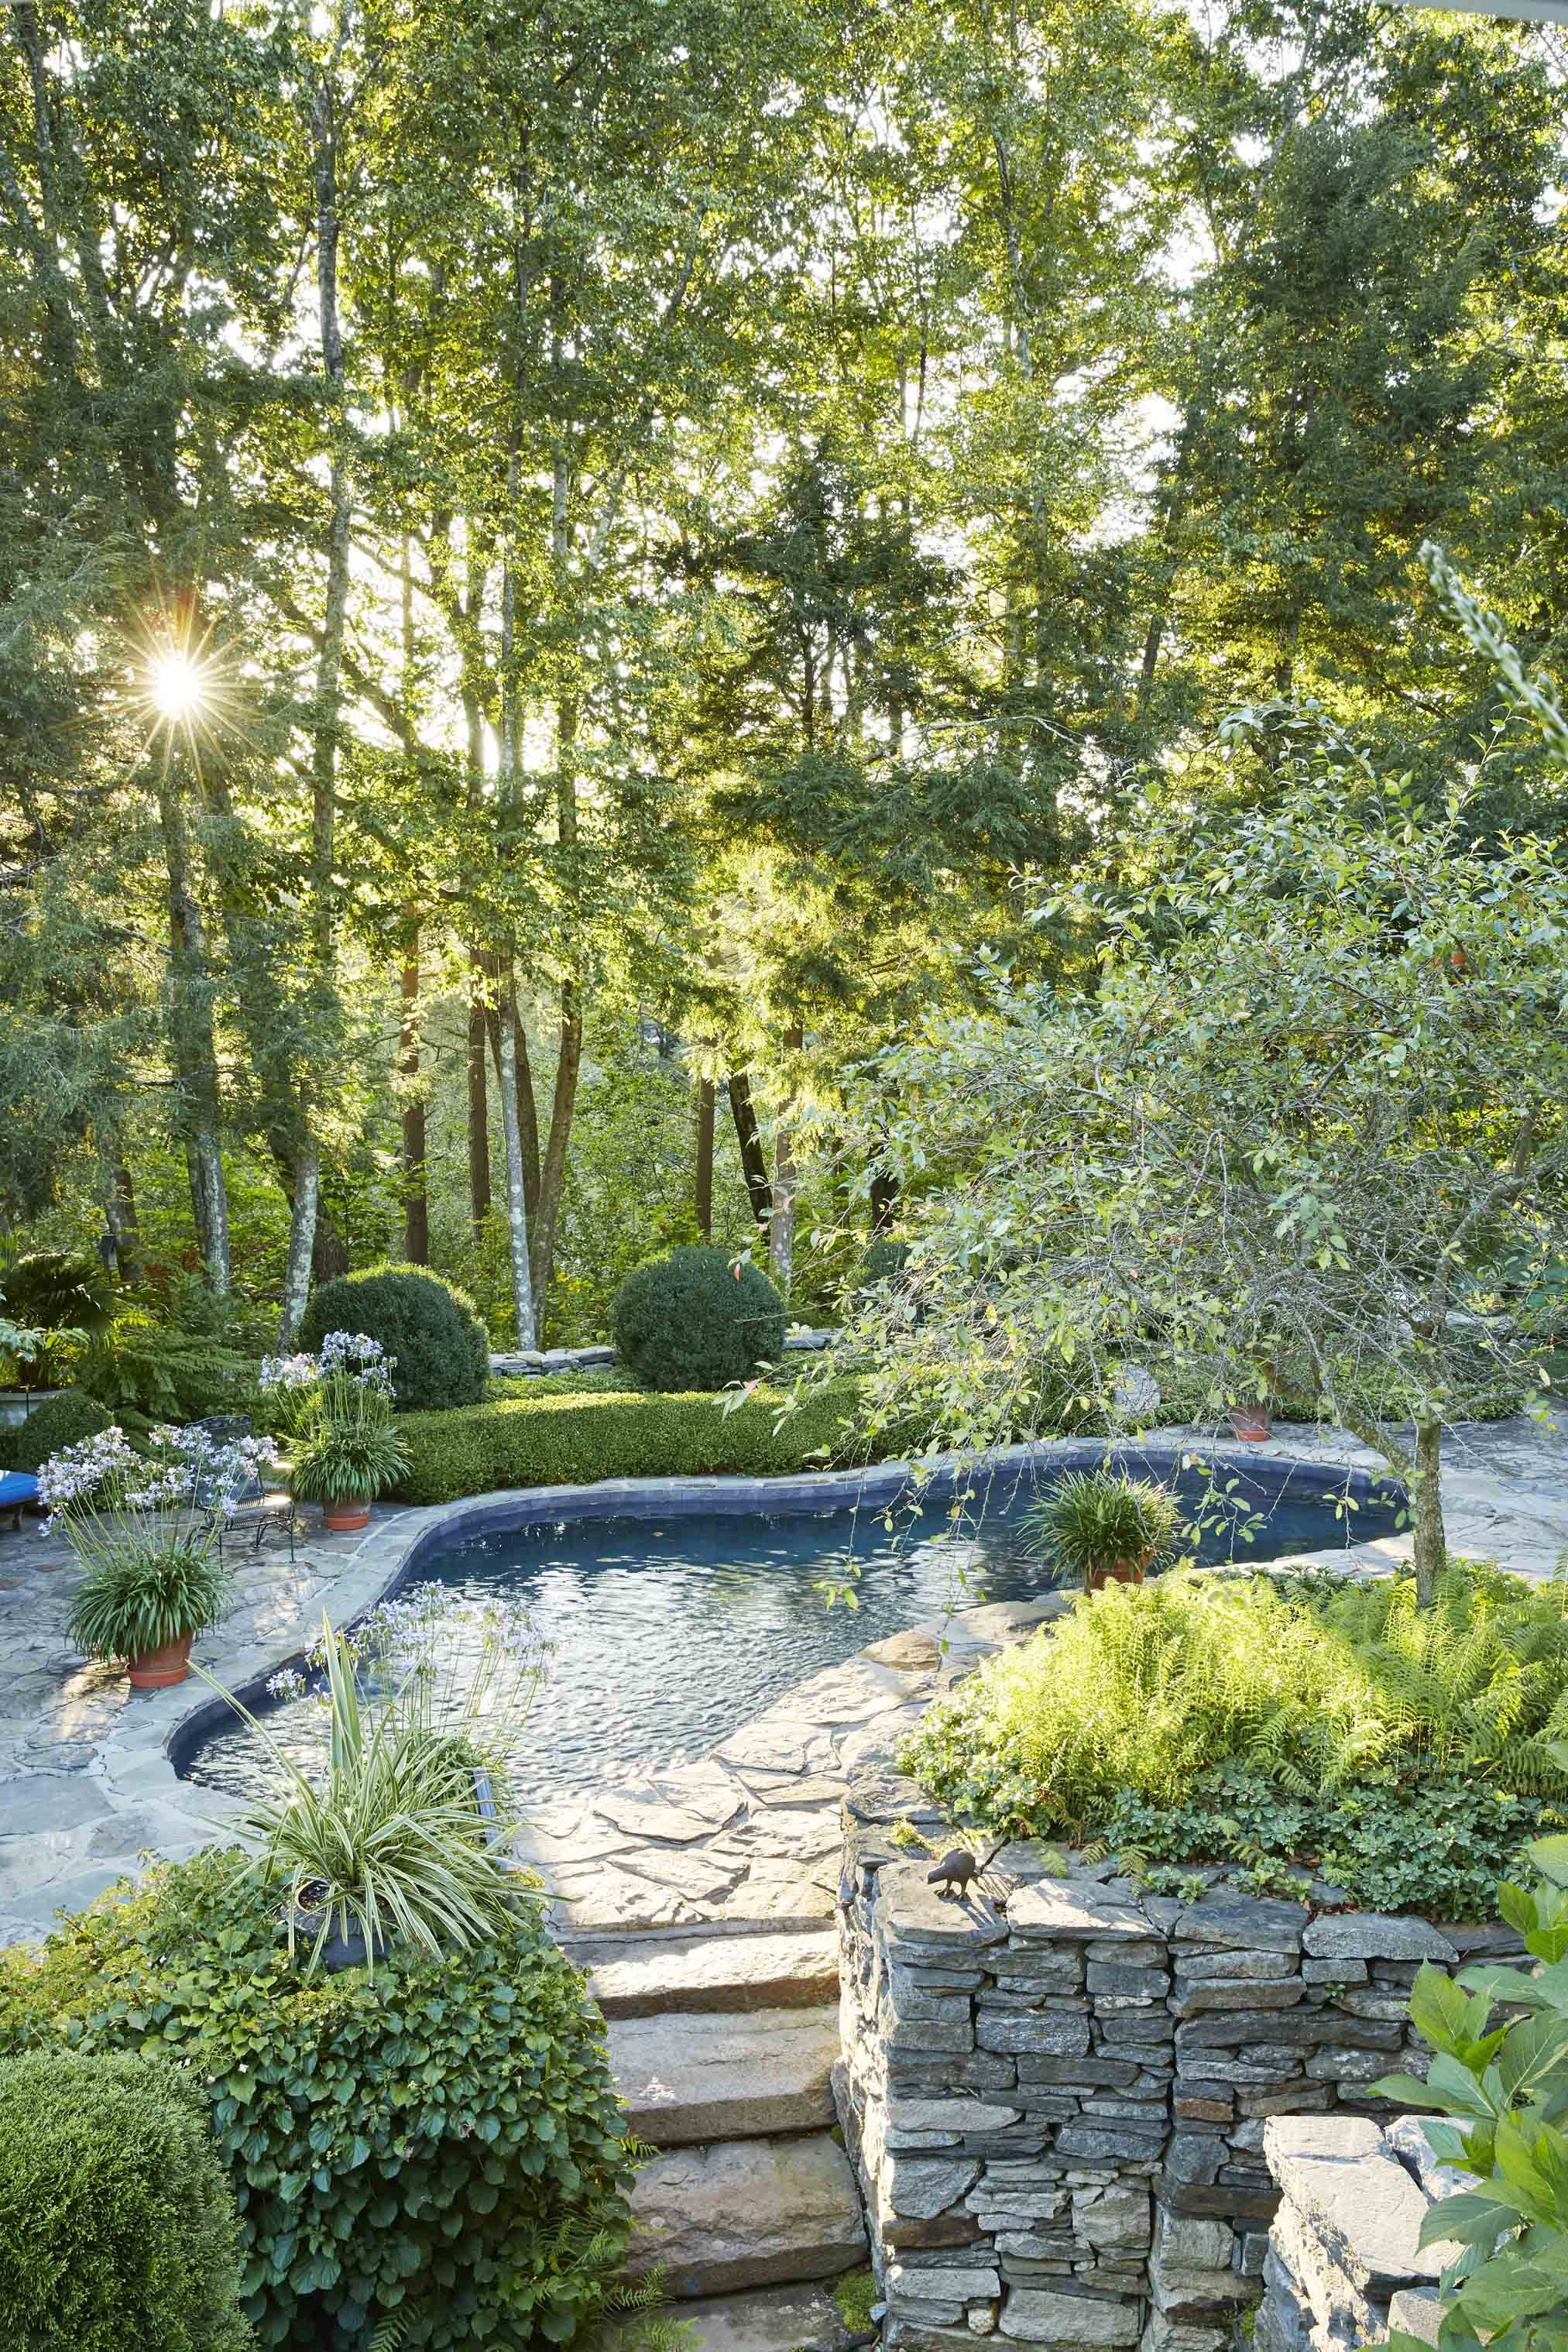 30 Best Swimming Pool Designs 2021 Gorgeous Backyard Ideas